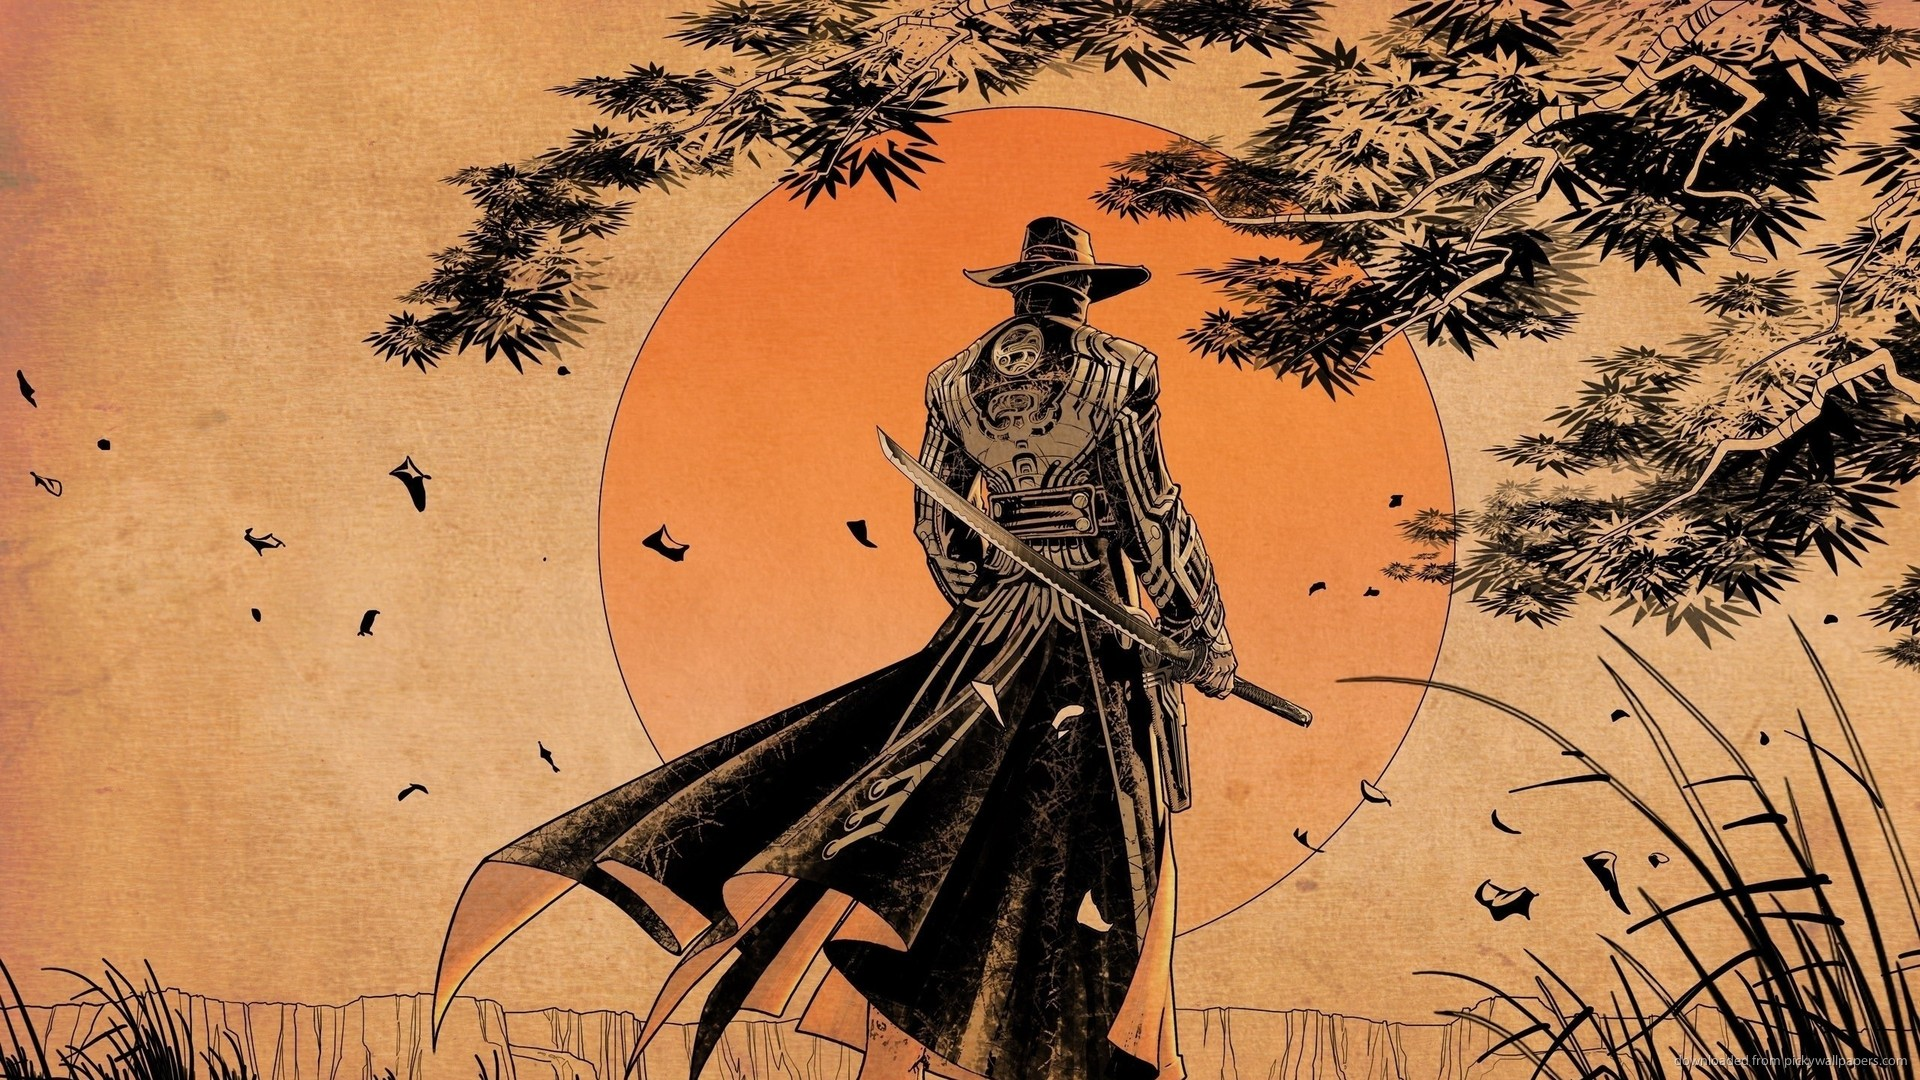 Download 1920x1080 Samurai Sunset Art Wallpaper